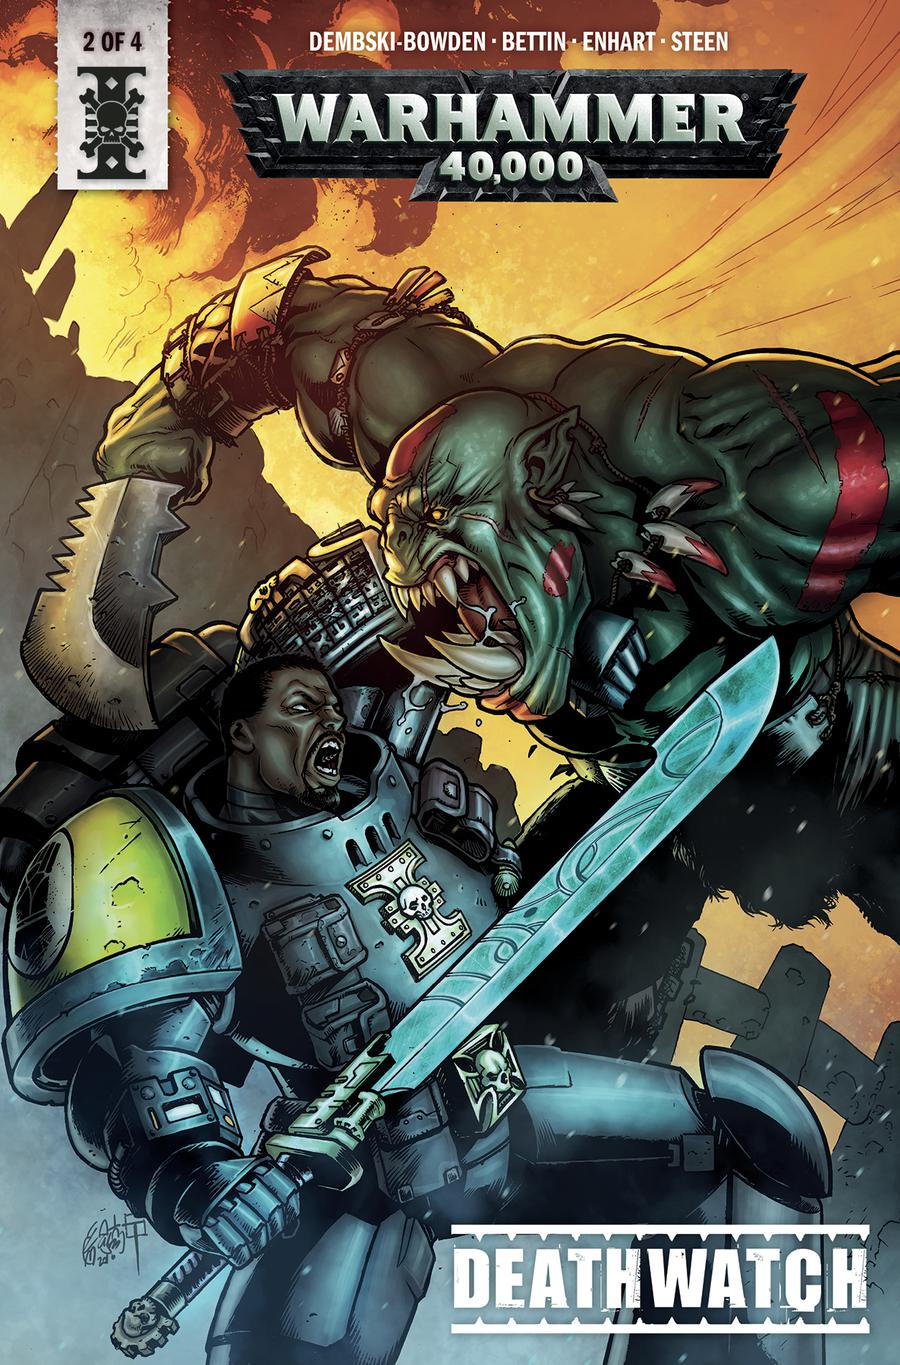 Warhammer 40000 Deathwatch #2 Cover B Variant Tazio Bettin and Enrica Angiolini Cover